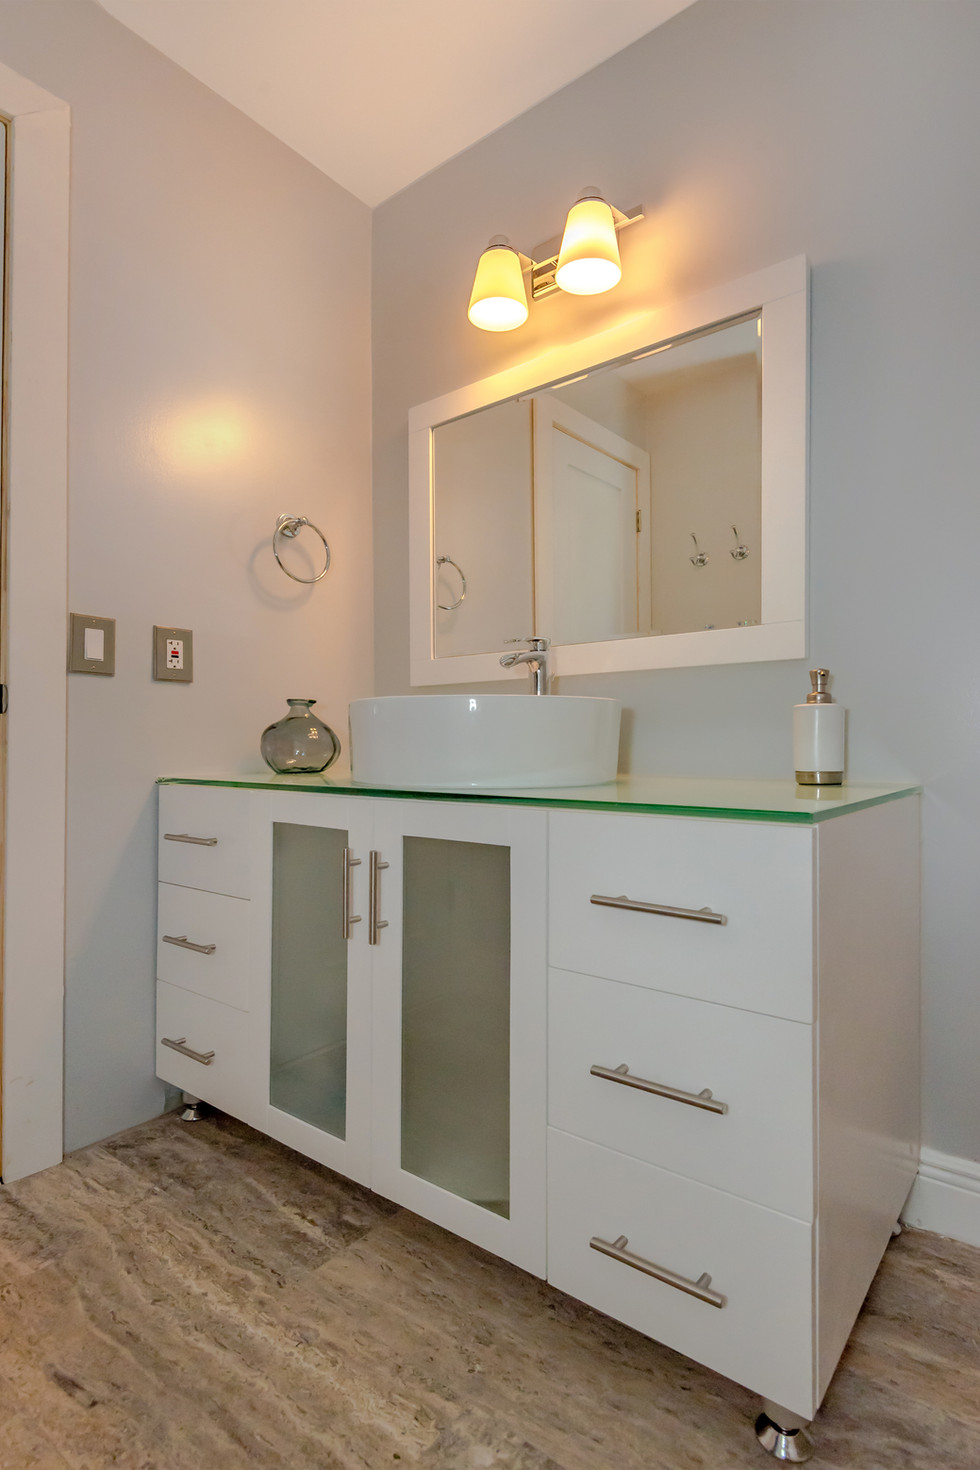 Custom Guest Bathroom Remodel with All-Wood Vanity with Above Counter Basin